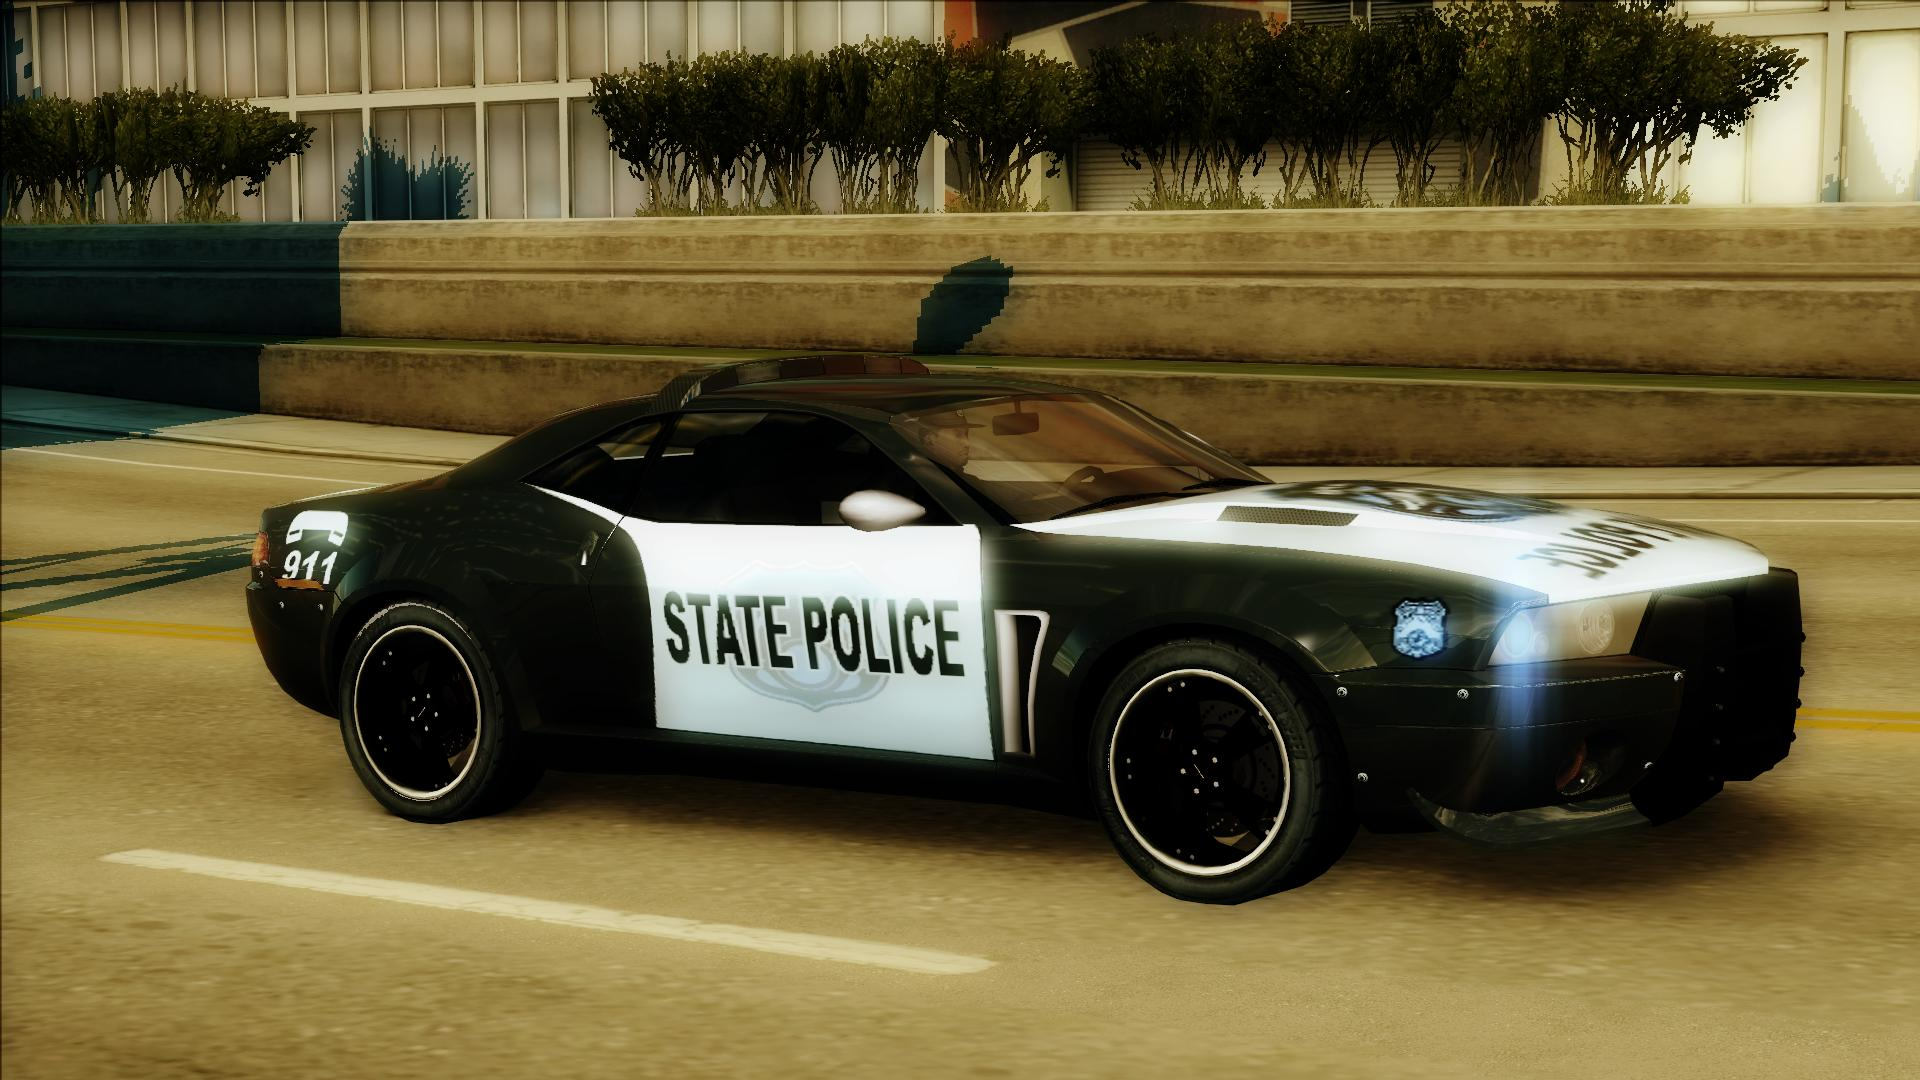 Police State Muscle Cruiser